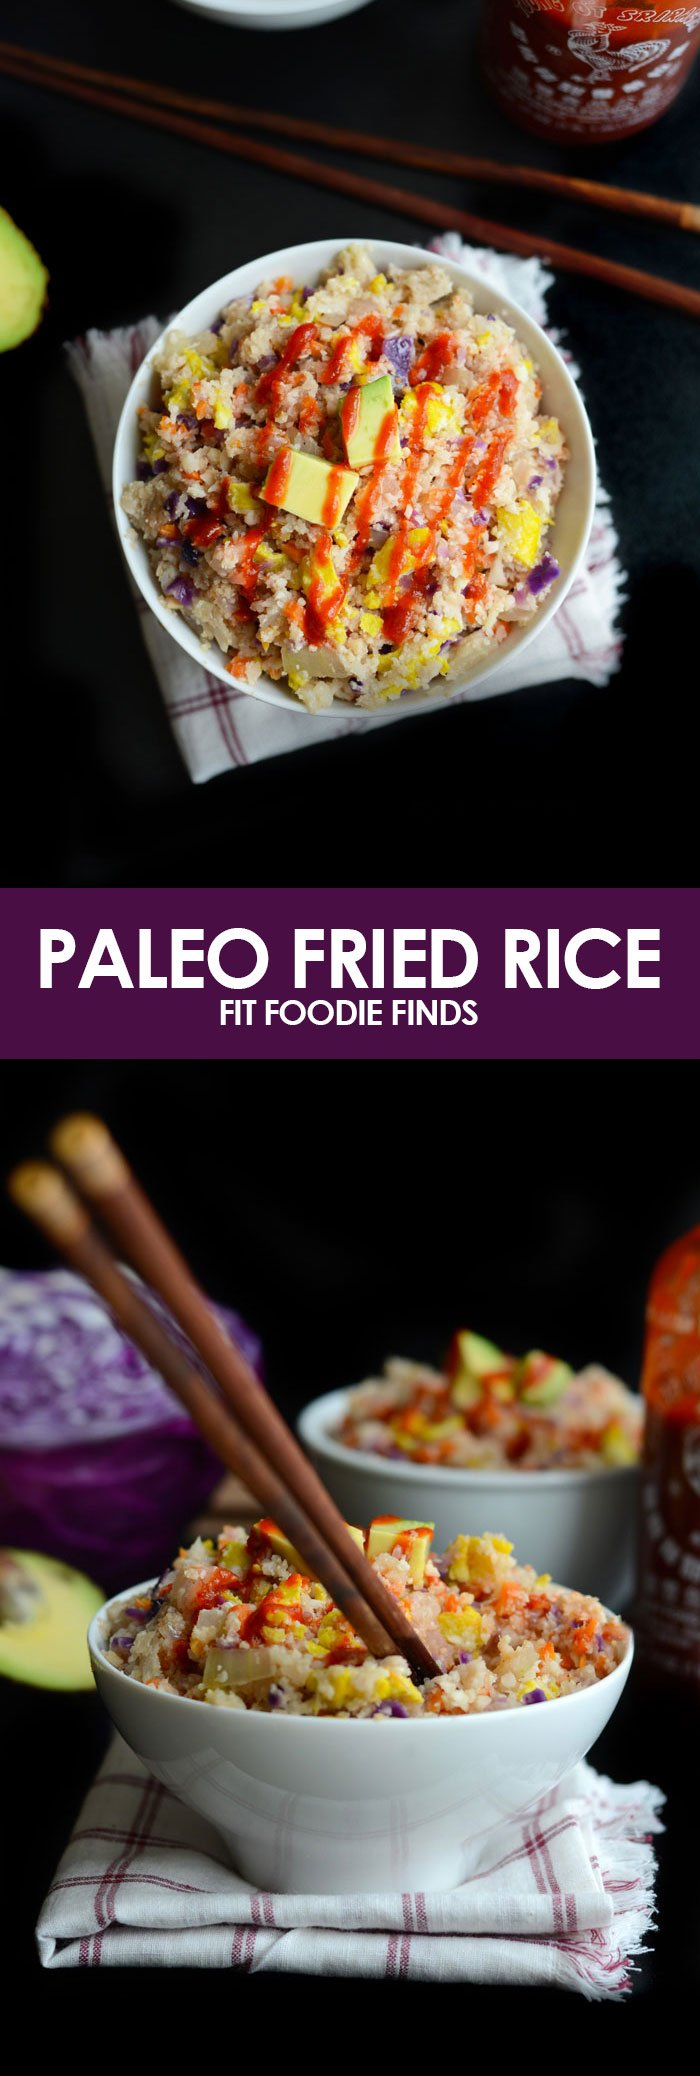 Make this Paleo Fried Rice using cauliflower in place of rice and tons of veggies for a healthy, quick, 30-minute meal that's healthy and delicious.